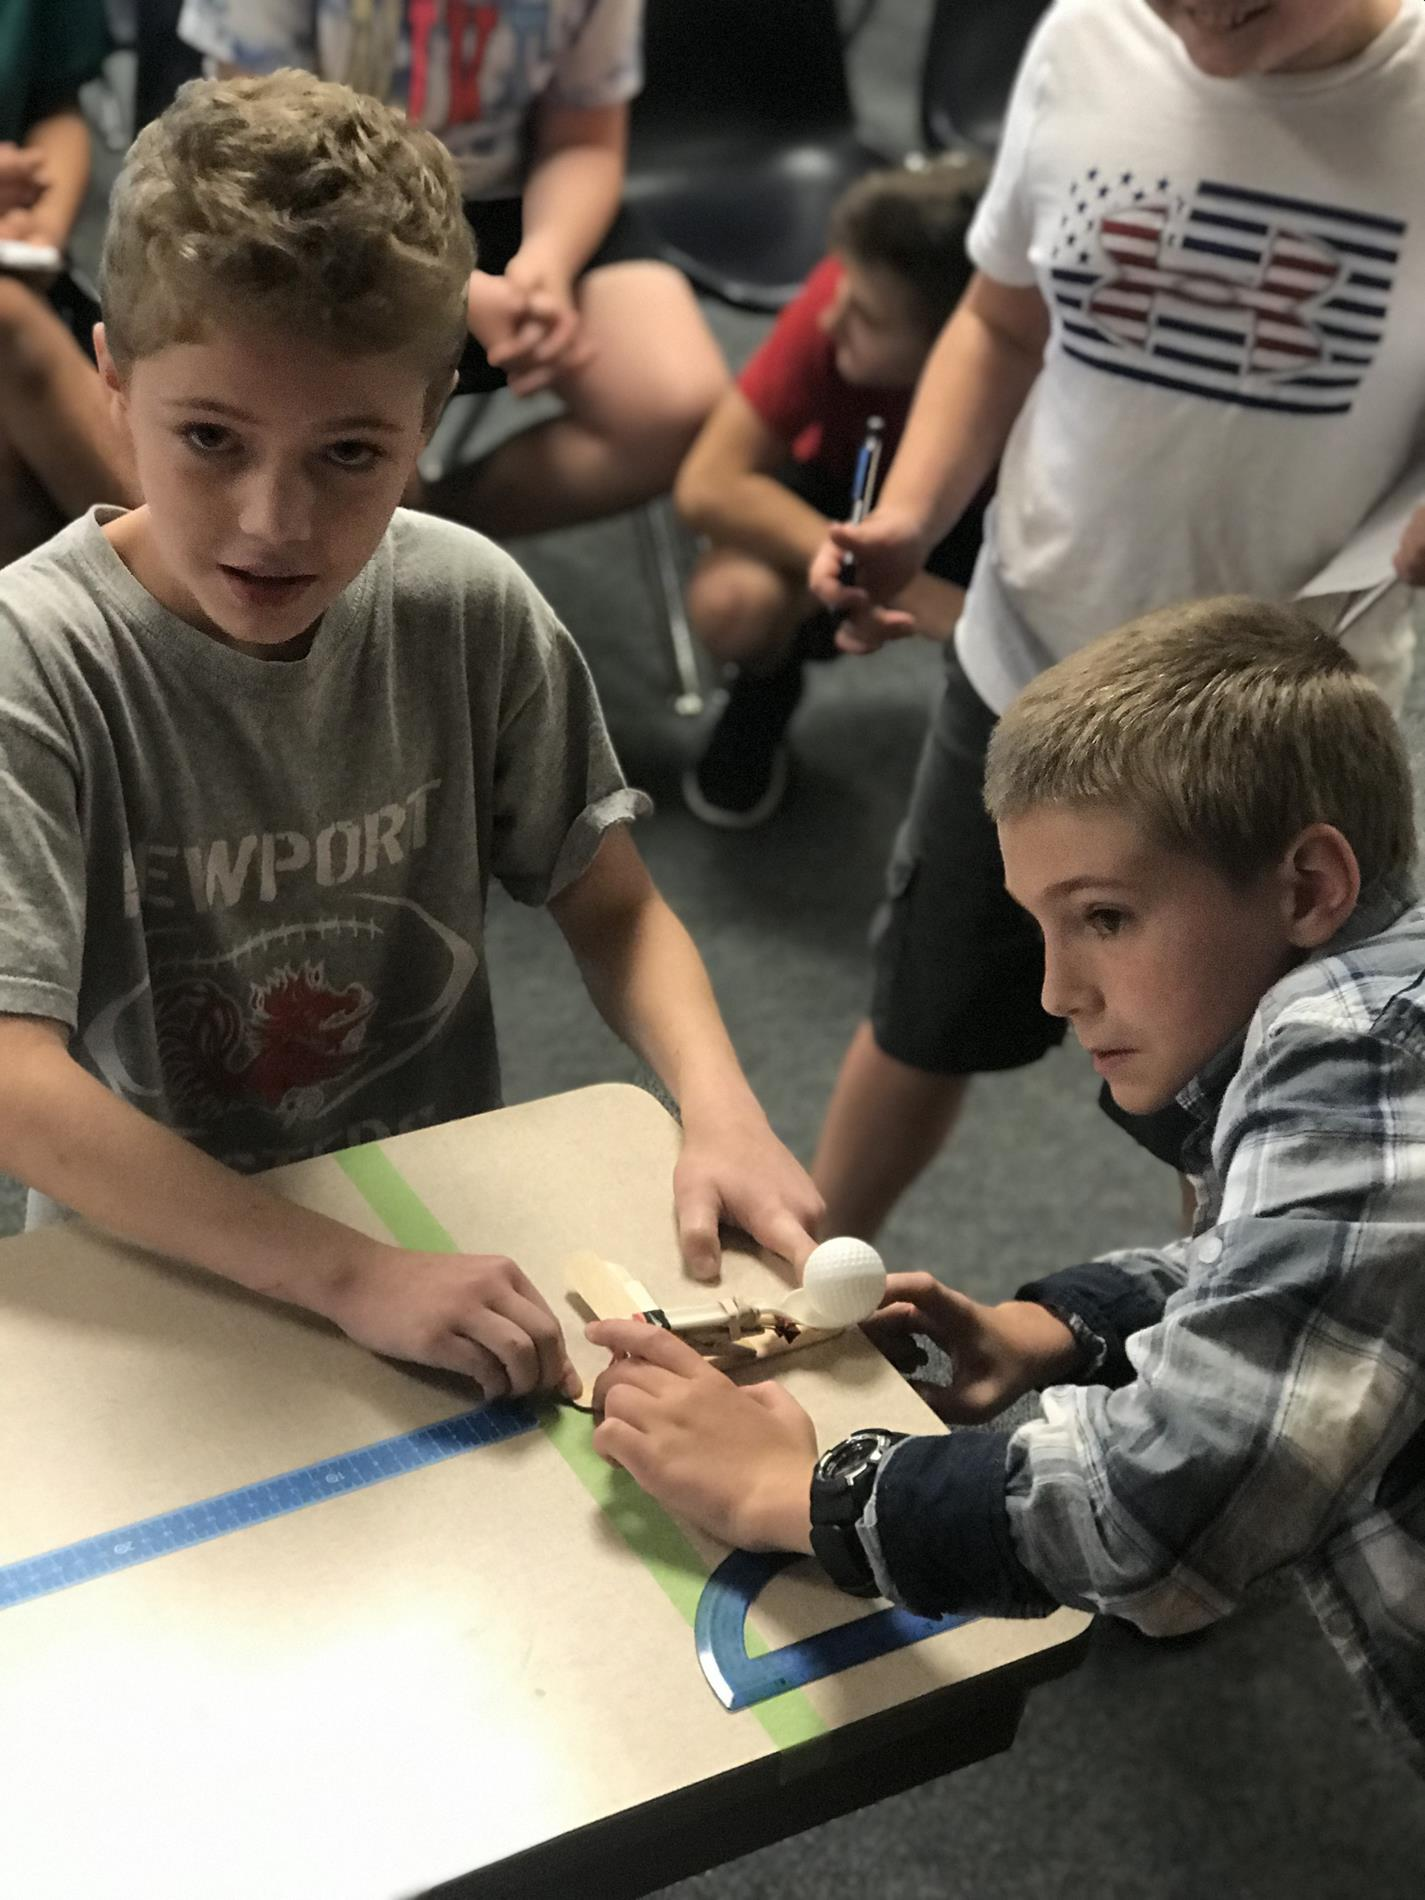 Students testing catapults